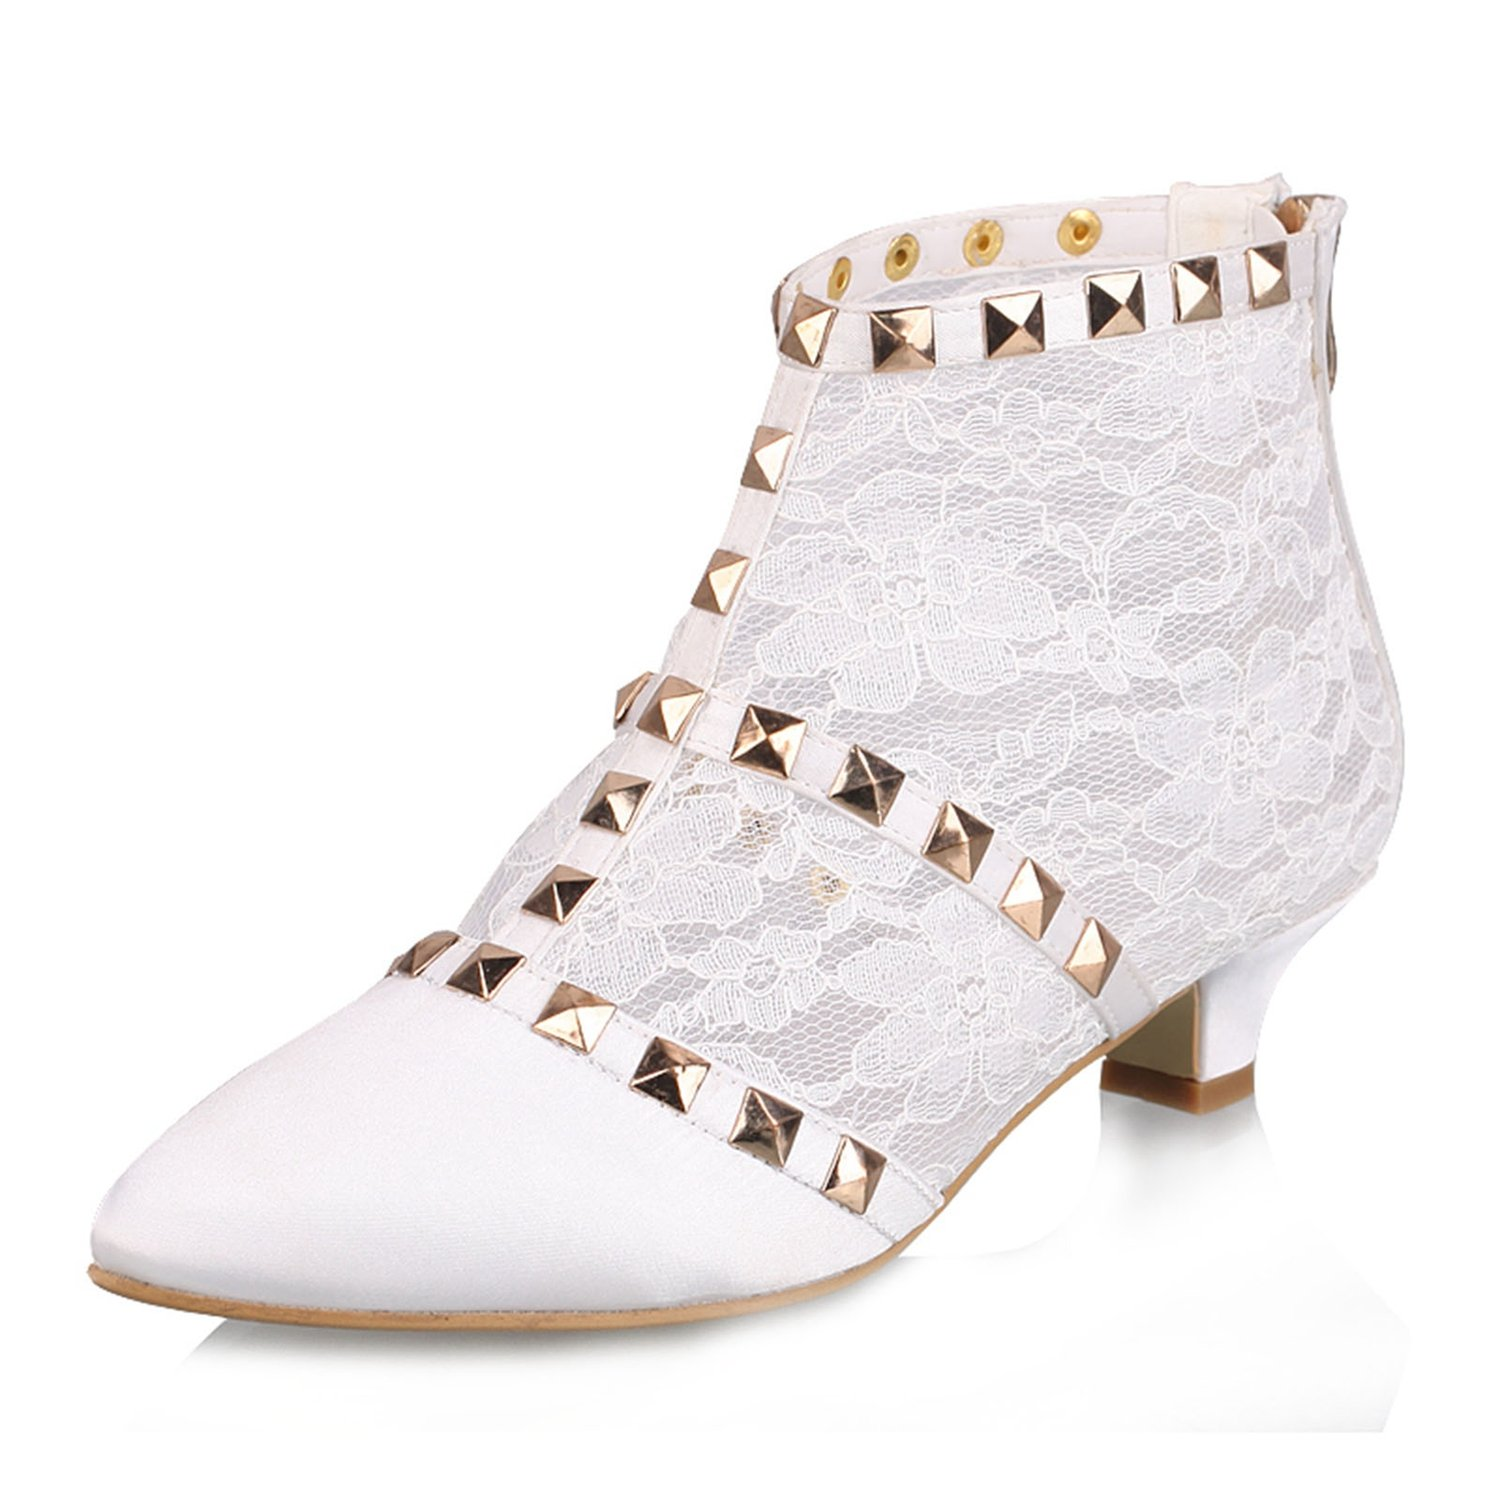 Minishion GYTH13137 Womens Kitten Heel Pointed Toe White Lace Floral Evening Party Bridal Wedding Sequin Zip Shoes Ankle Boots US 8.5